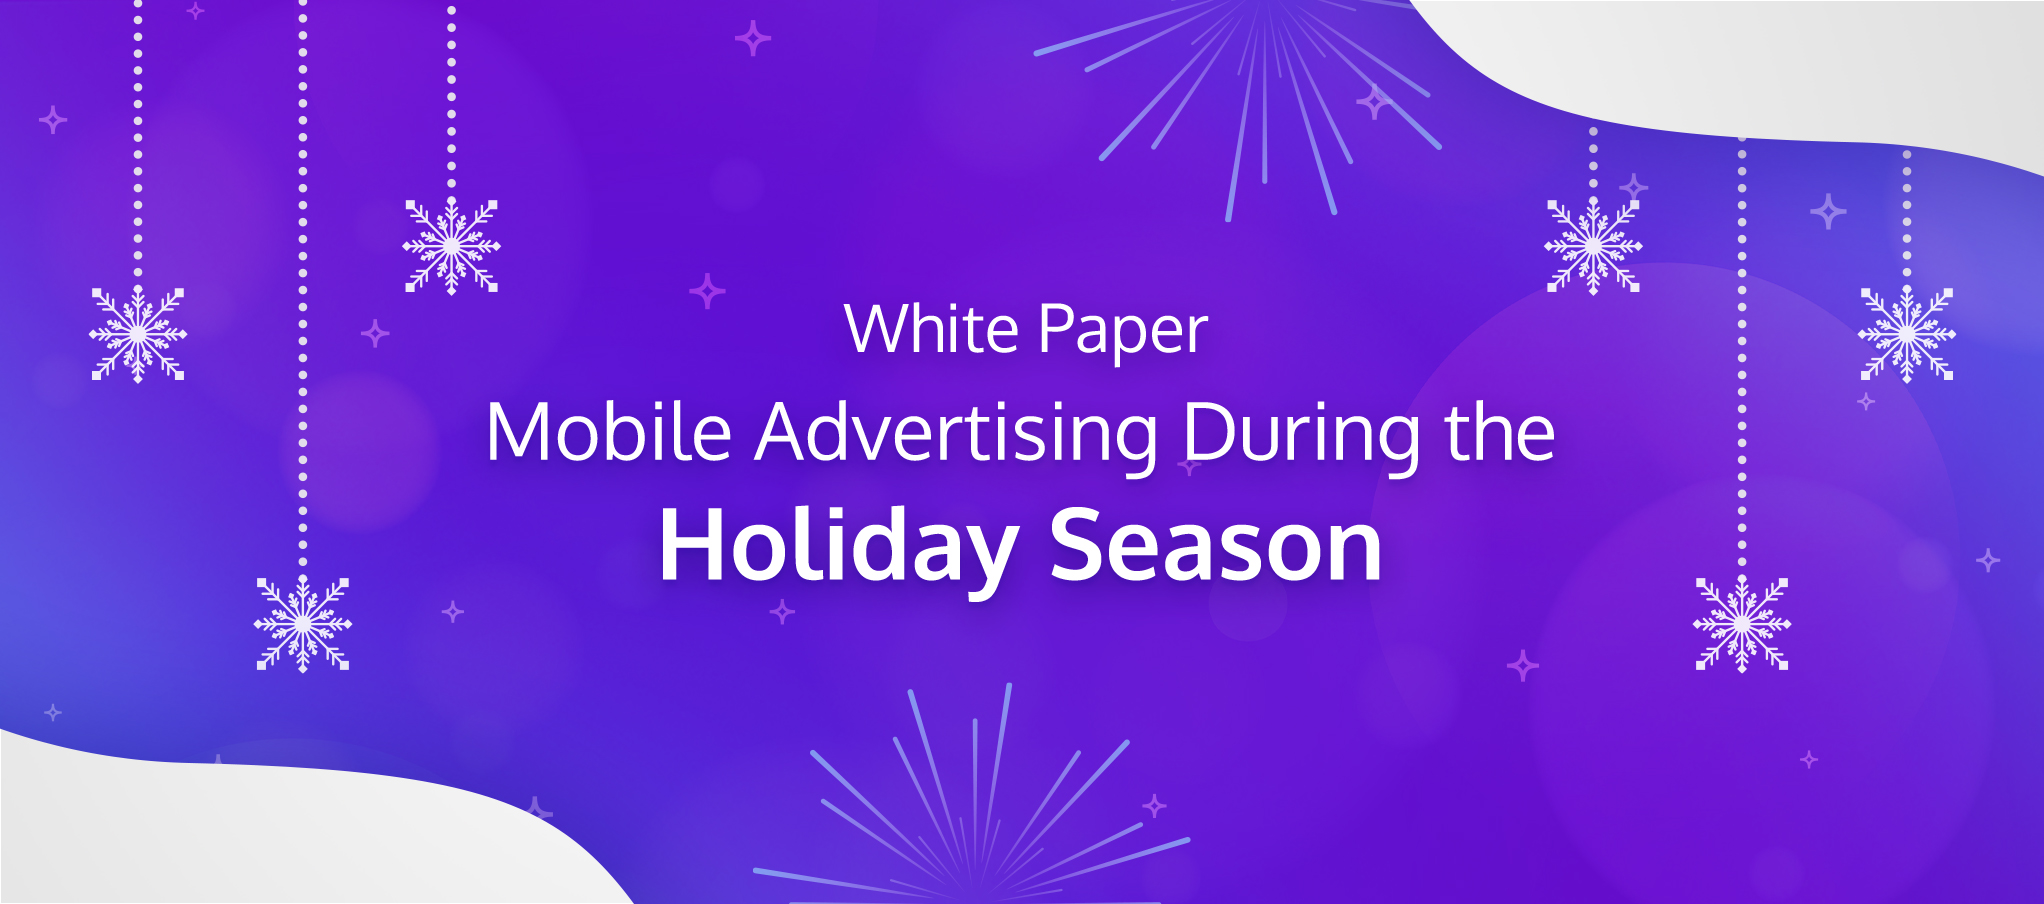 Holiday Season in Mobile advertising